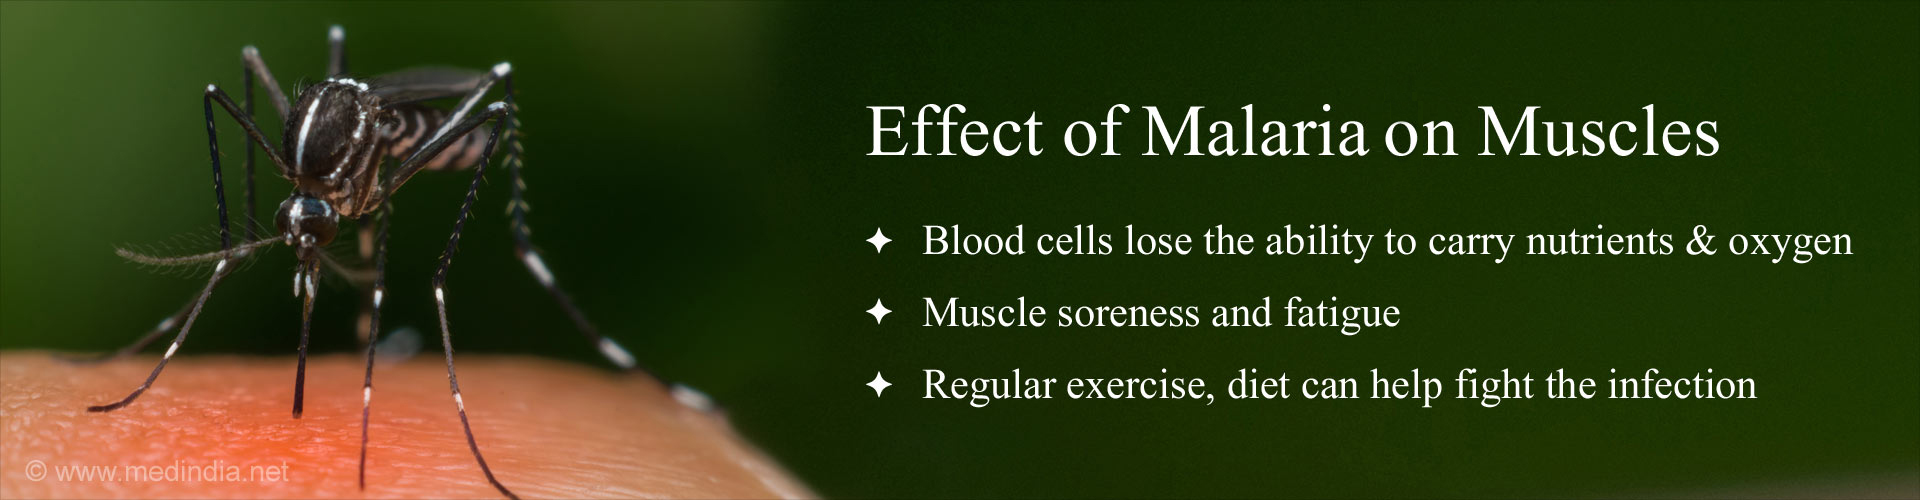 Exercise, Diet Could Combat the Effect of Malaria on the Muscles